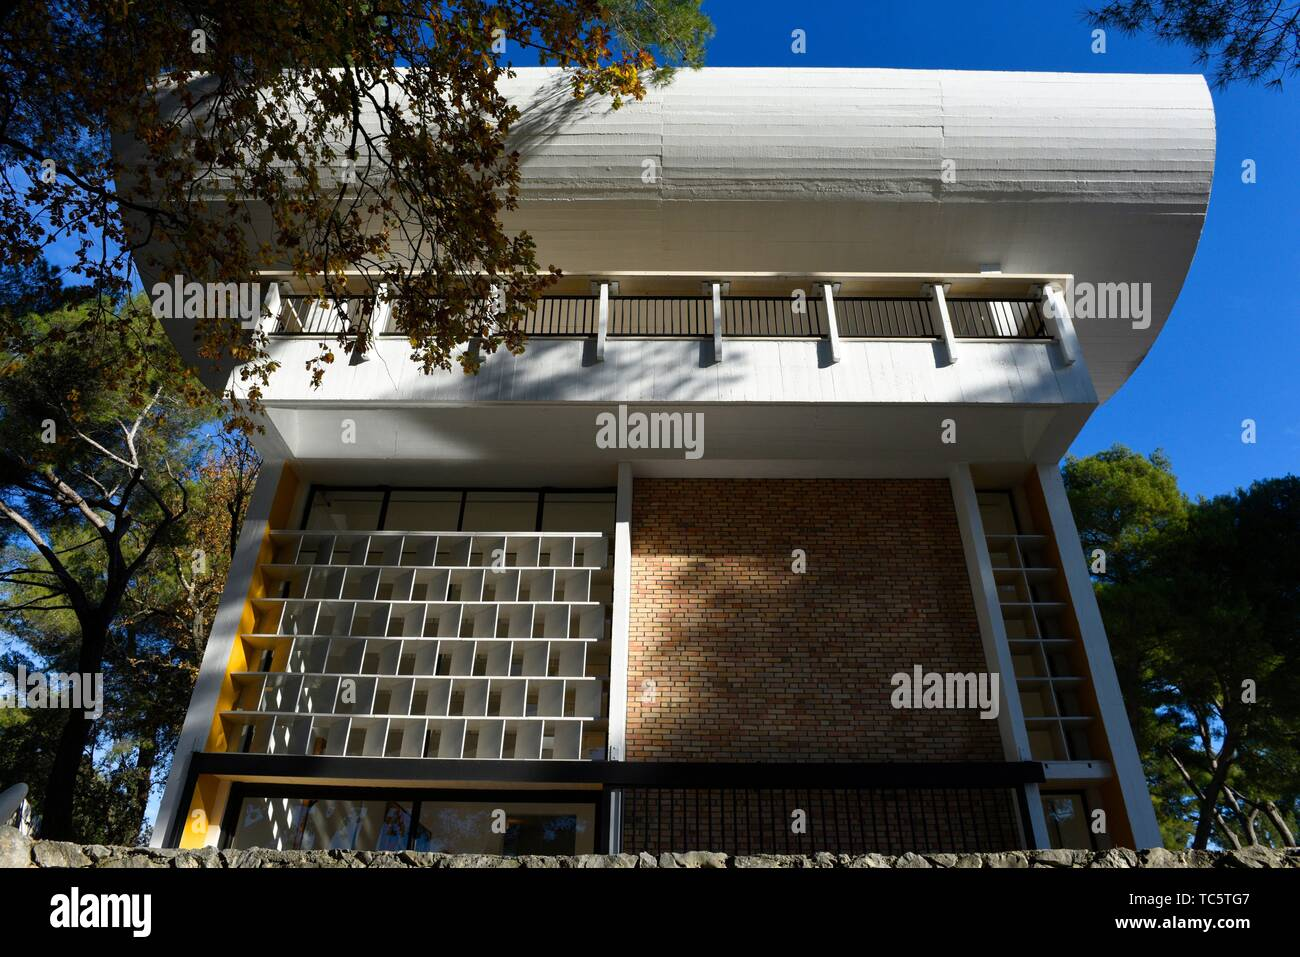 Fondation Maeght, Saint-Paul-de-Vence,Alpes Maritimes department,Provence Alpes Cote d'Azur region,Southeast France. - Stock Image